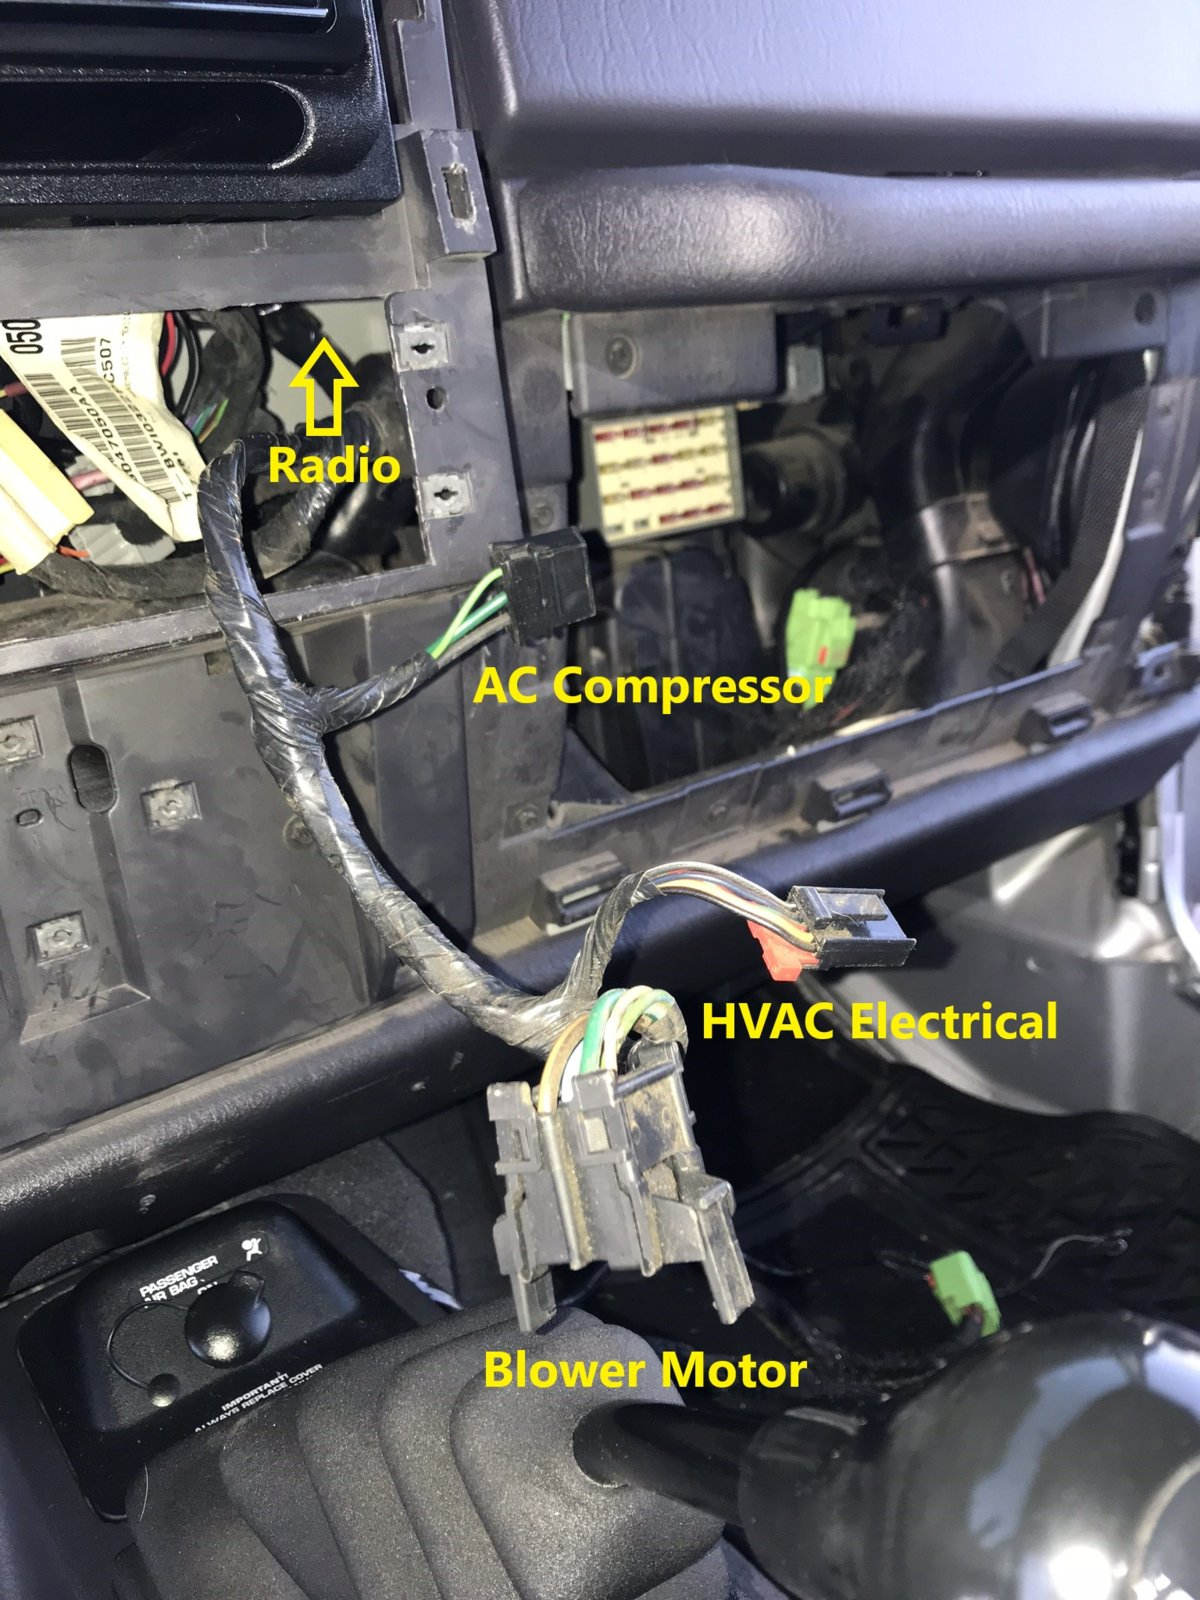 How to Factory Wire your TJ for a Hardtop Part 1 (Dash ... Jeep Wrangler Hardtop Wiring Harness on jeep wrangler trailer wiring, geo tracker wiring harness, jeep grand wagoneer wiring harness, jeep tail light wiring harness, dodge dakota wiring harness, 2001 jeep wiring harness, amc amx wiring harness, 2004 jeep wiring harness, jeep wiring harness diagram, jeep transmission wiring harness, honda cr-v wiring harness, chevy aveo wiring harness, chrysler pacifica wiring harness, hummer h2 wiring harness, jeep wrangler wiring sleeve, mazda rx7 wiring harness, jeep wrangler wiring connector, pontiac bonneville wiring harness, chevy cobalt wiring harness, jeep patriot wiring harness,